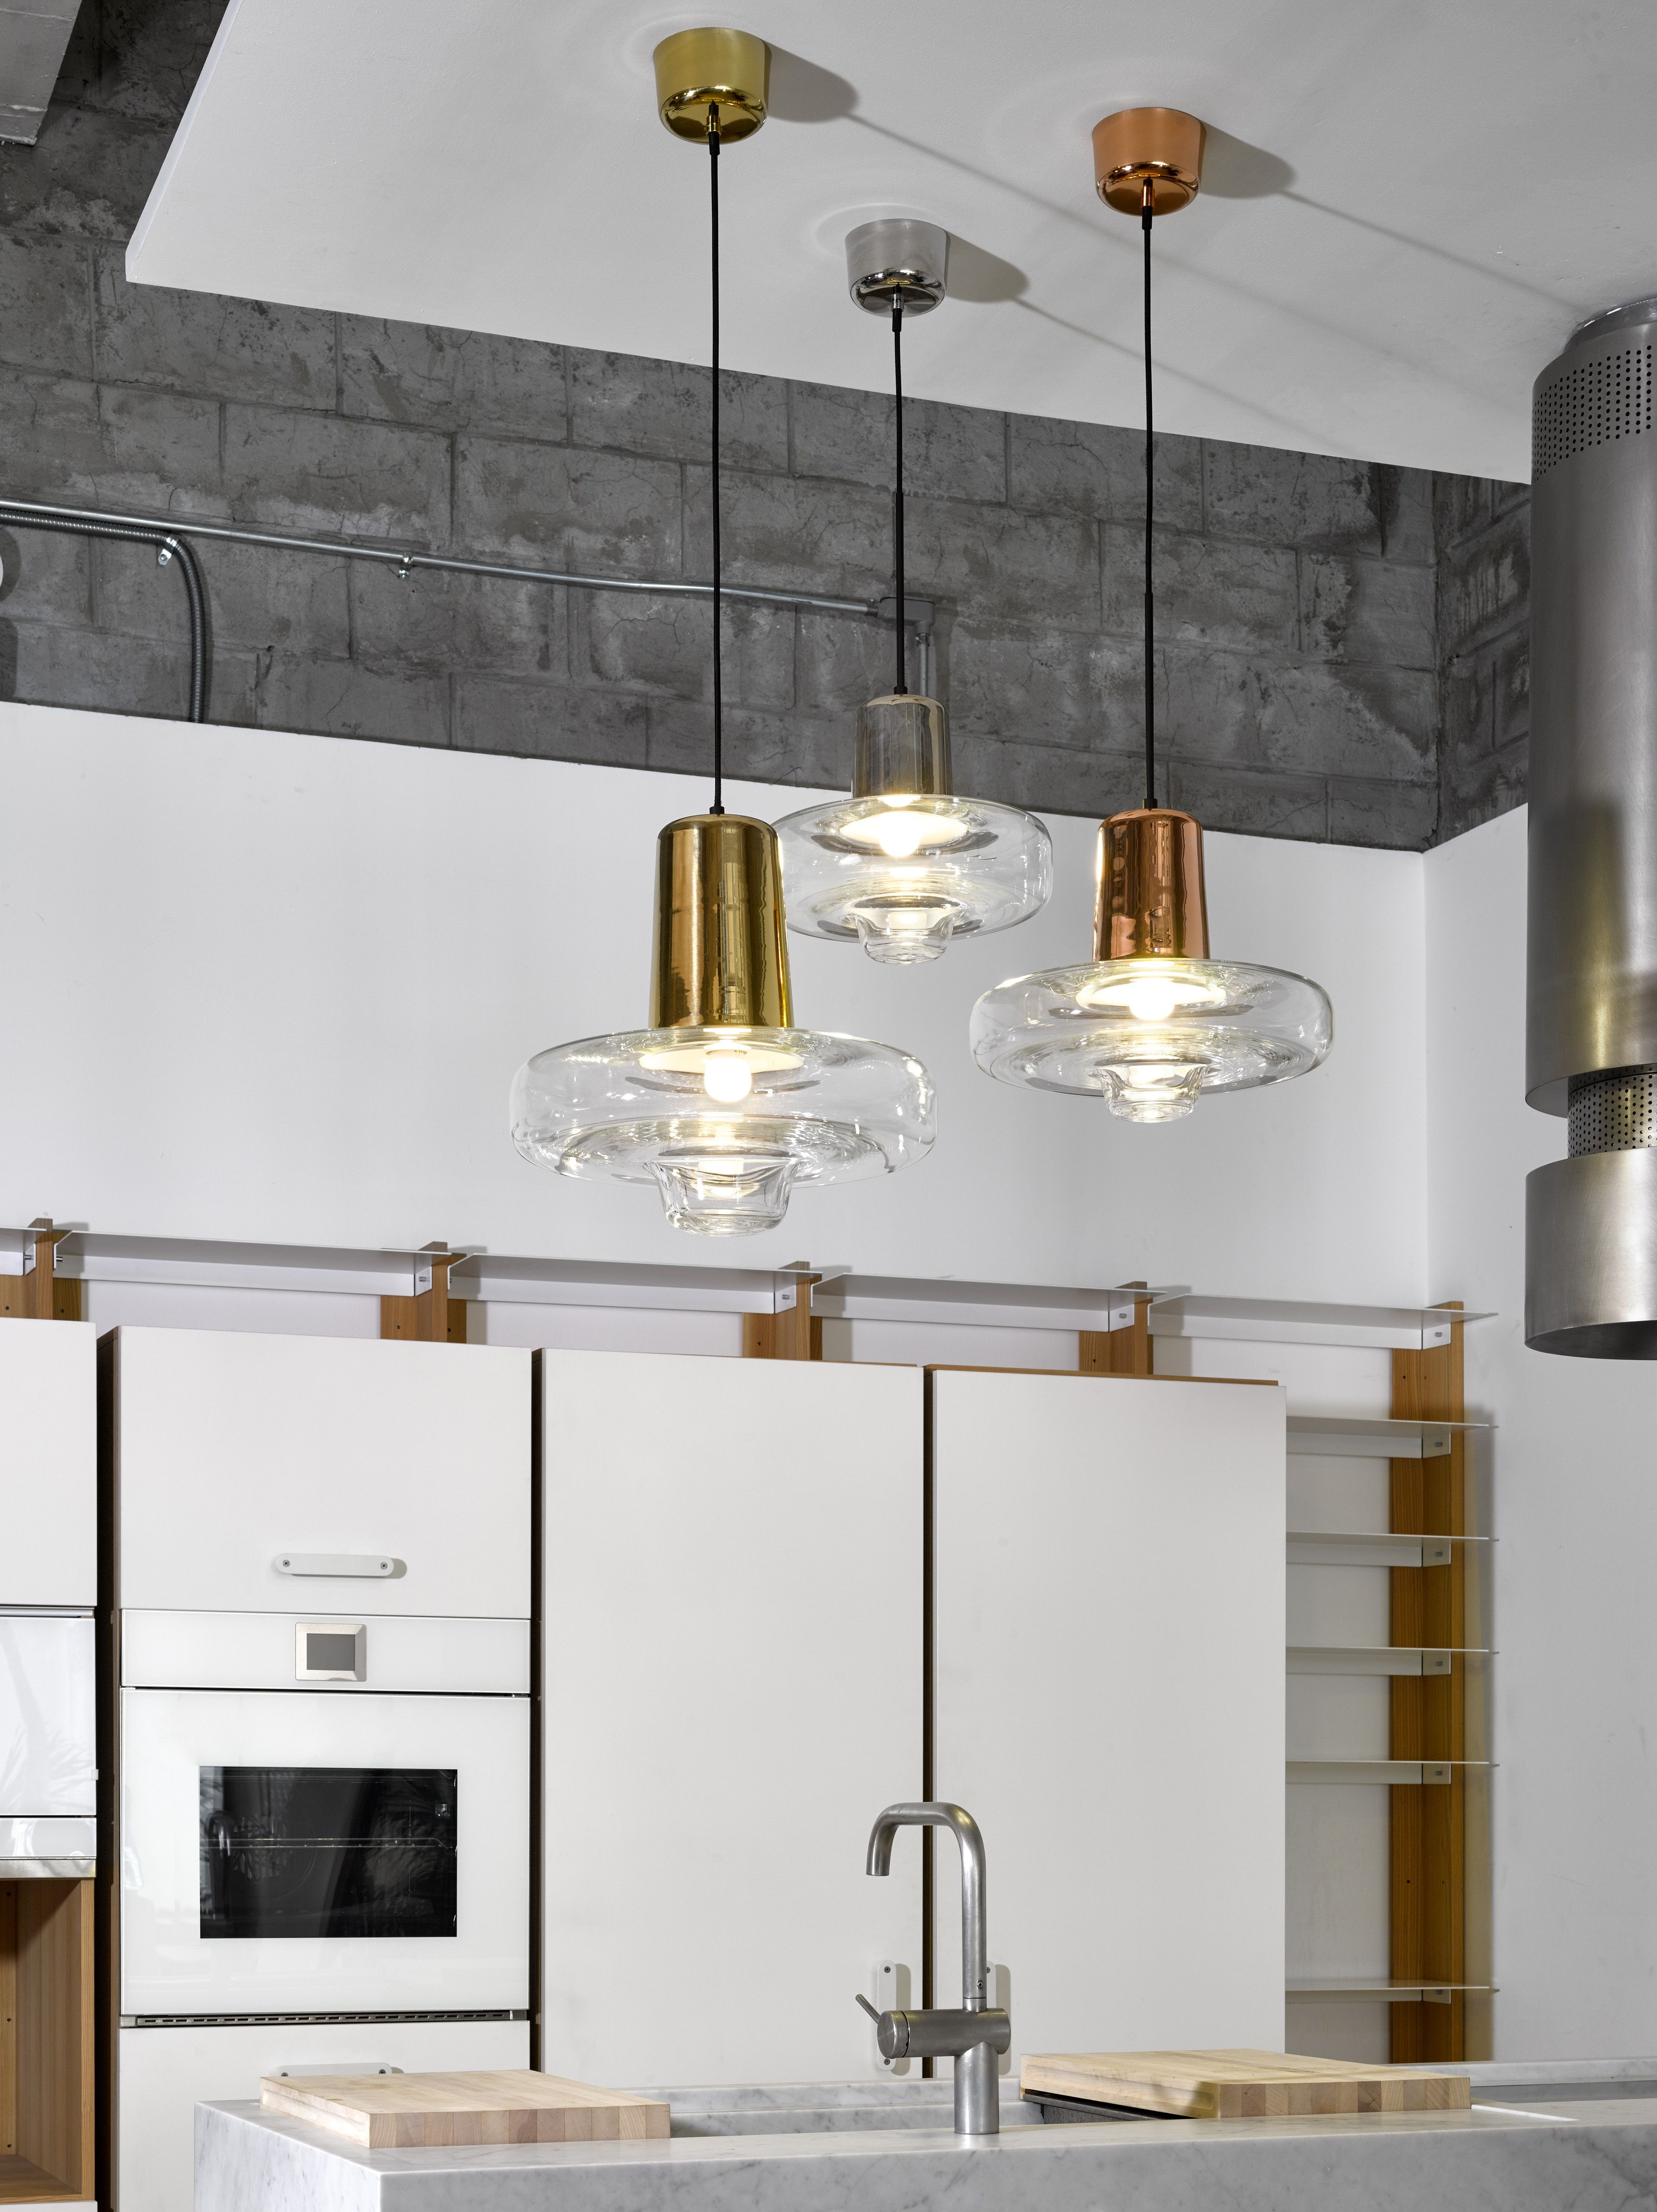 Spin Light Pendants By Lasvit, Designed By Lucie Koldová At CWC Interiors  Showroom In Manila